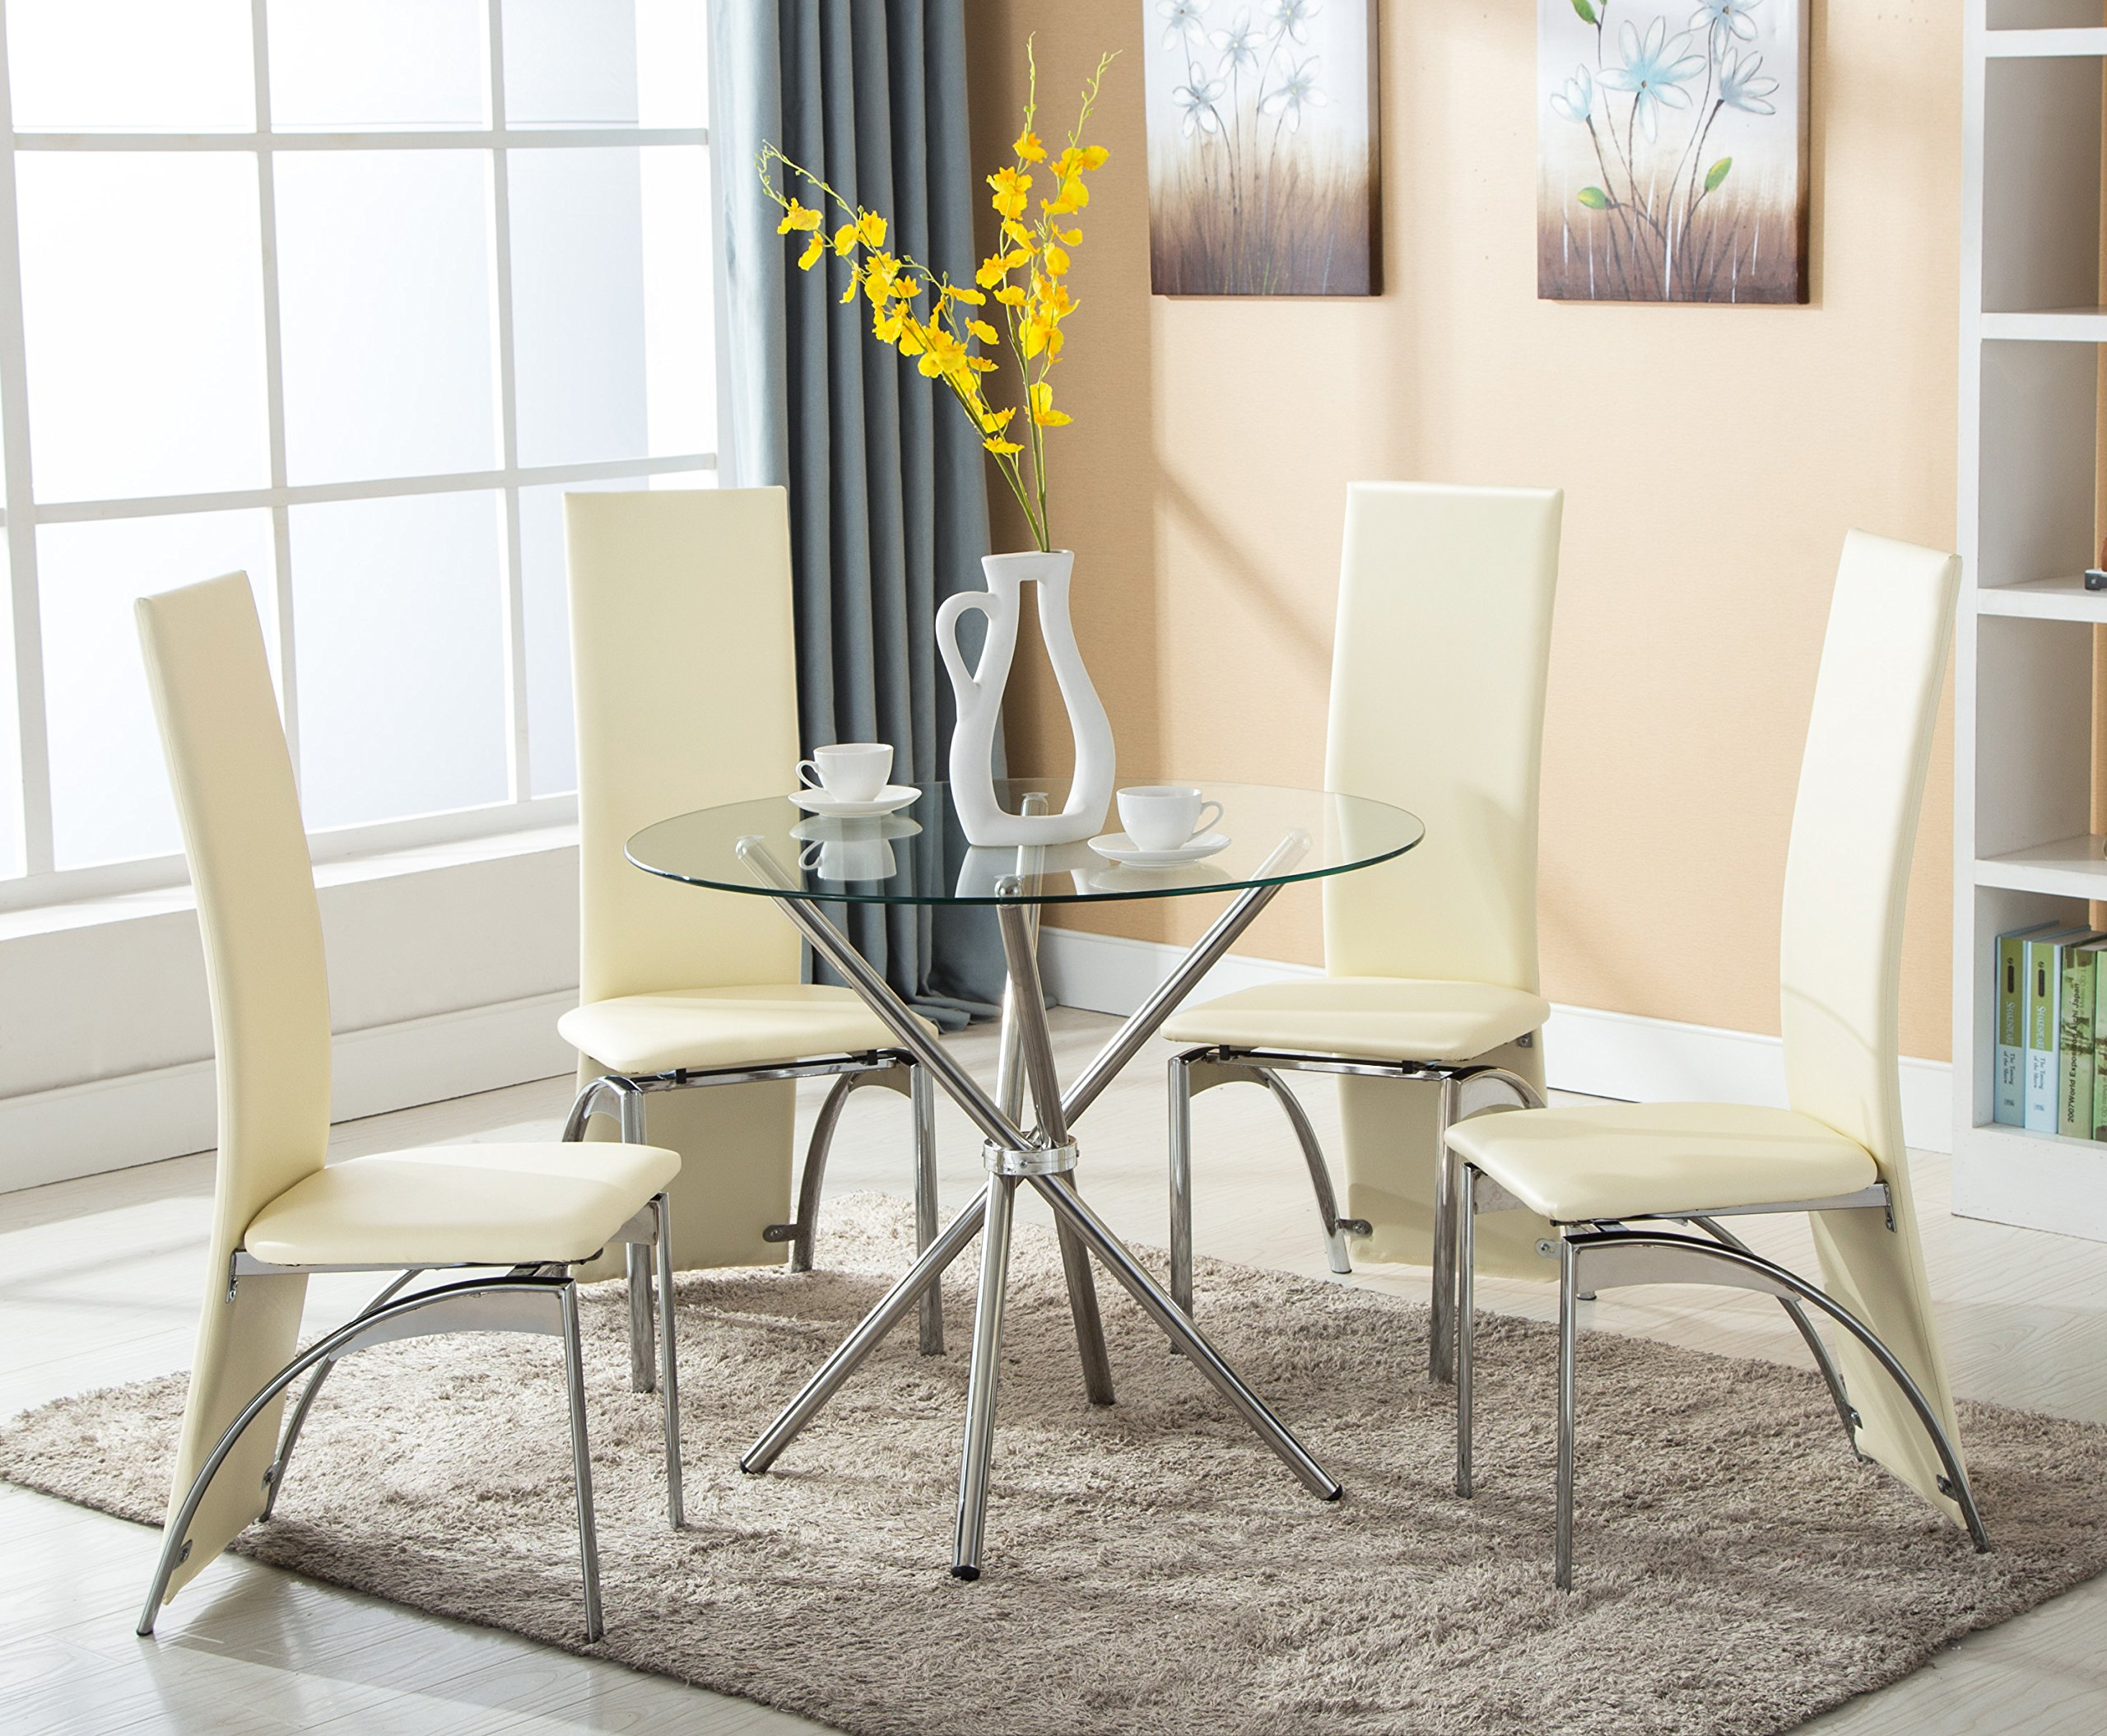 Cheap Glass Round Dining Table And Chairs Find Glass Round Dining - Round dining room table with 4 chairs